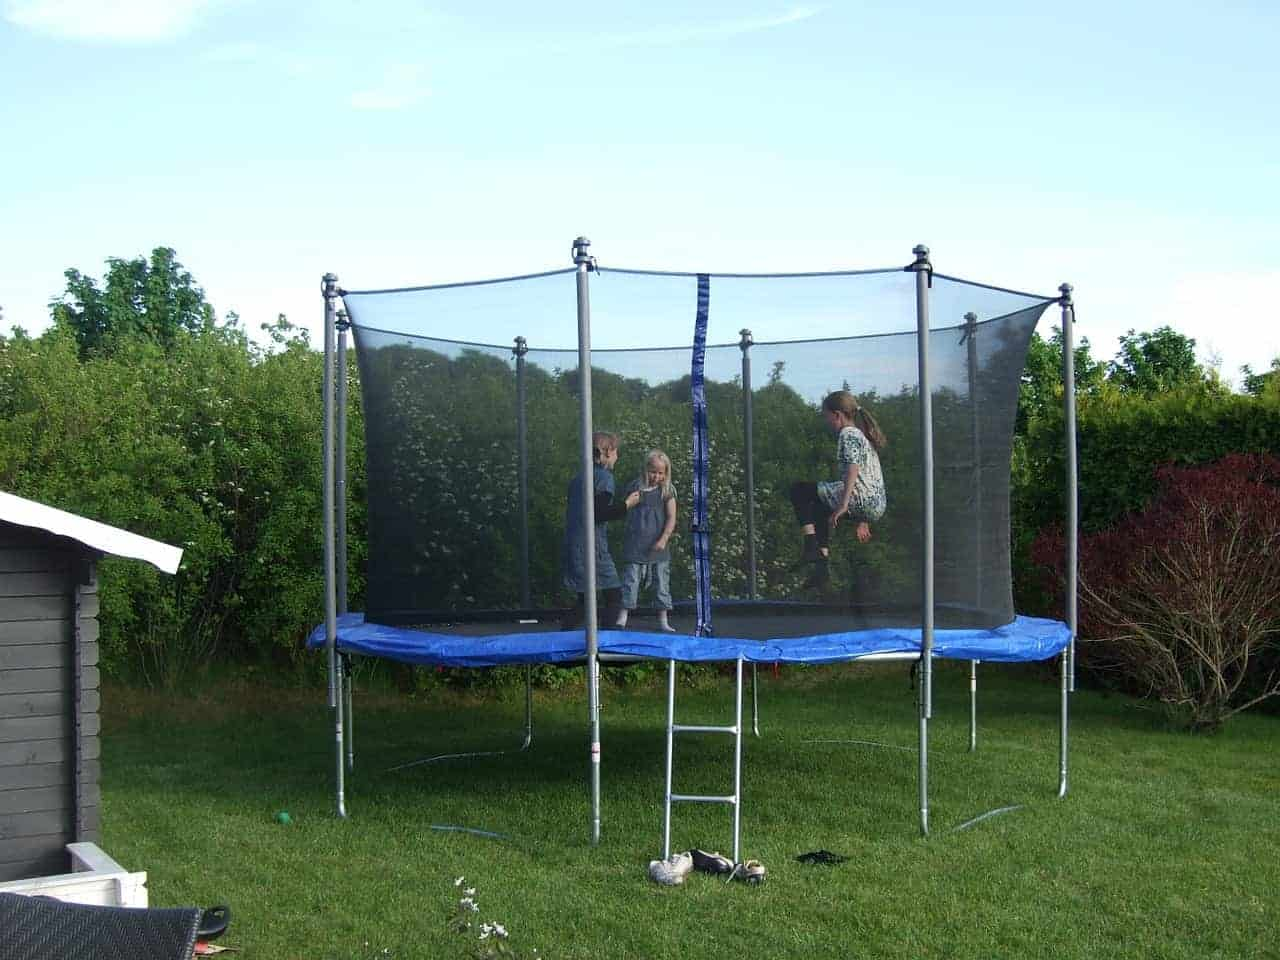 A Beginner's Guide to Trampolines